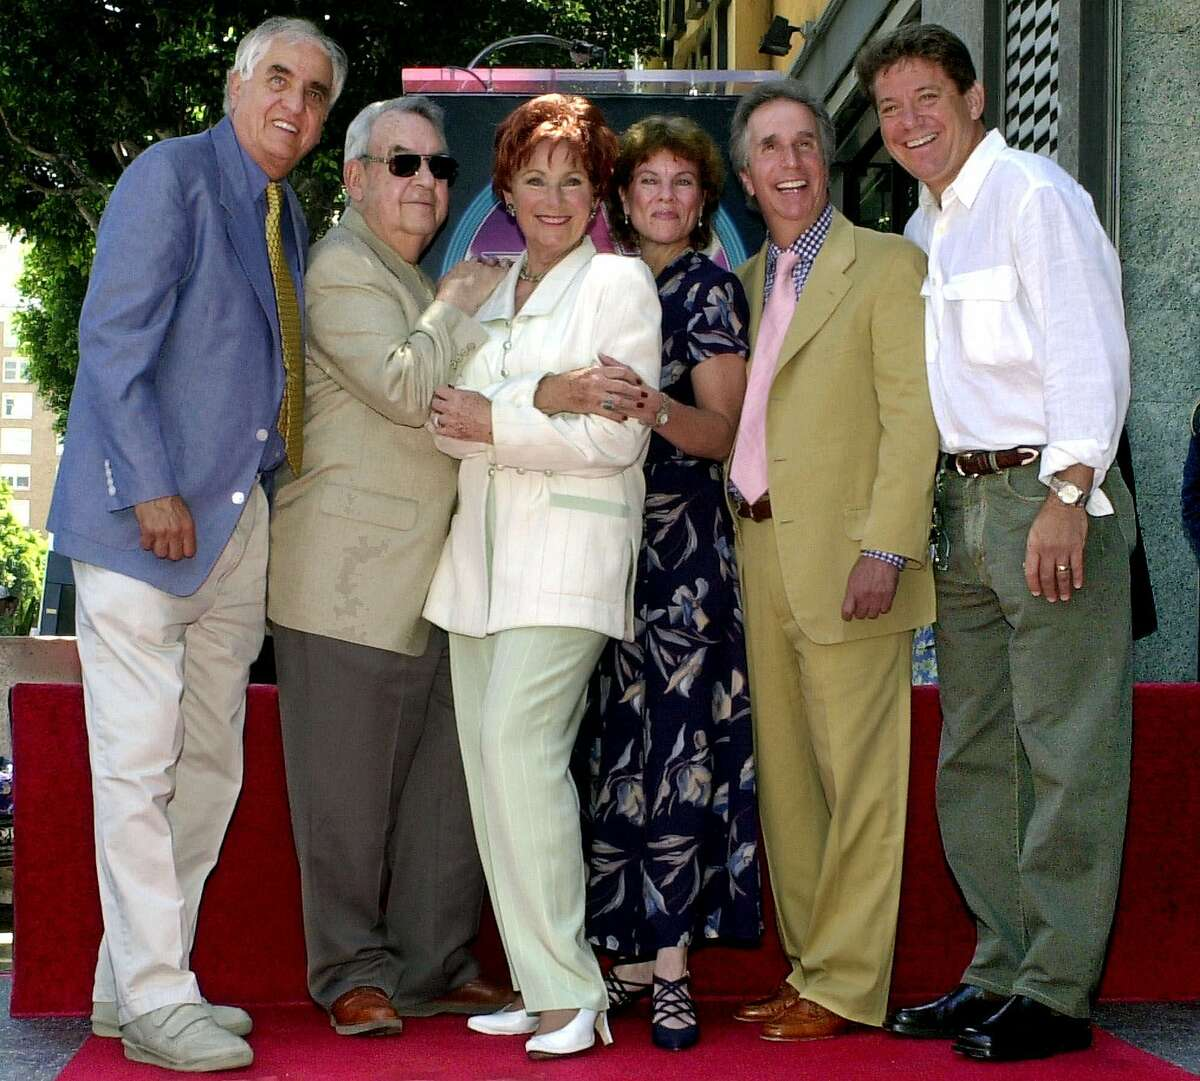 FILE - In this July 12, 2001 file photo, Garry Marshall, from left, Tom Bosley, Marion Ross, Erin Moran, Henry Winkler, and Anson Williams of the television show